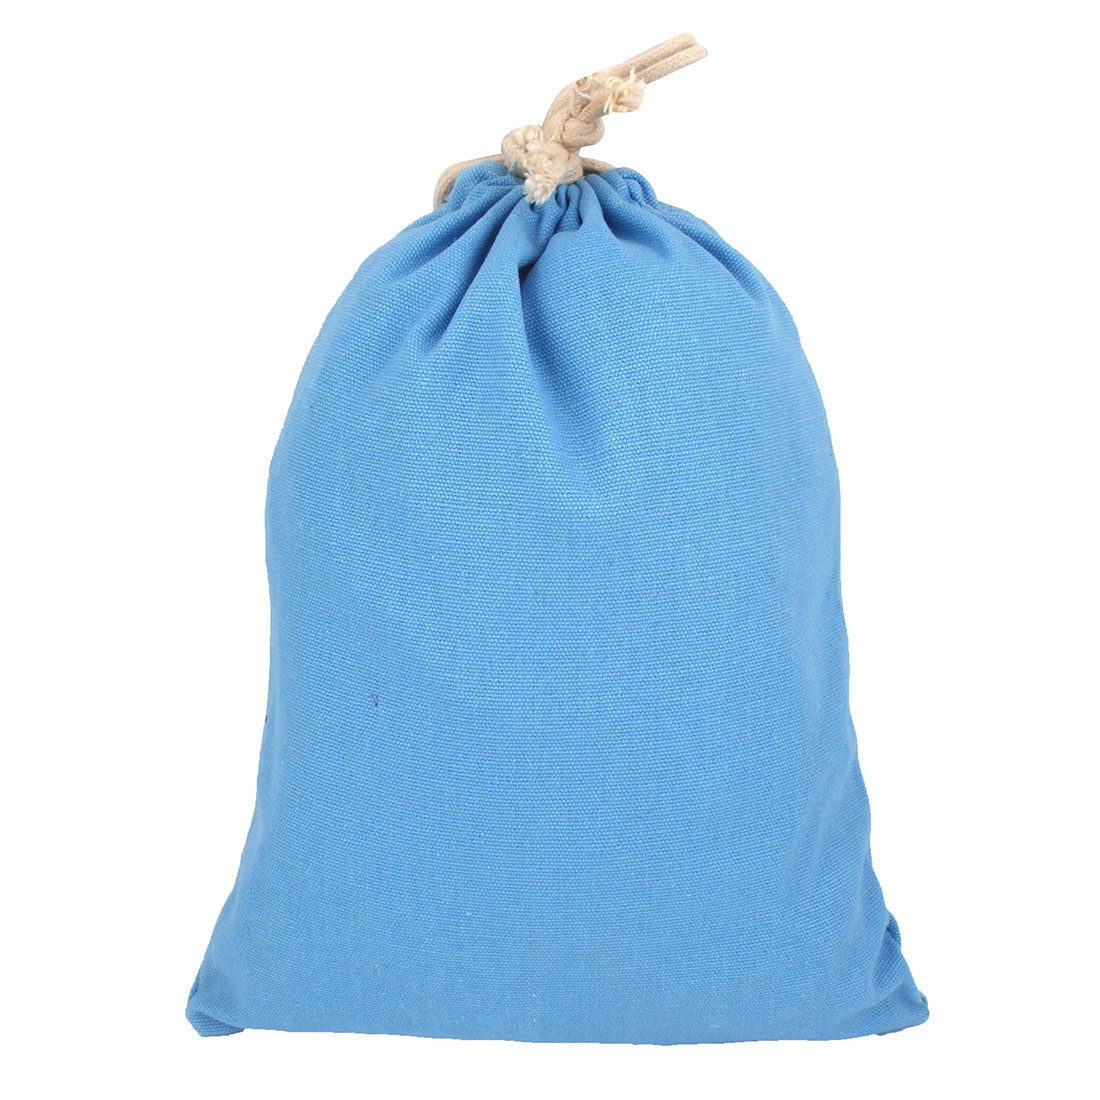 Outdoor Canvas Draw Pouch Storage Packing Gift Toe Bag Light Blue